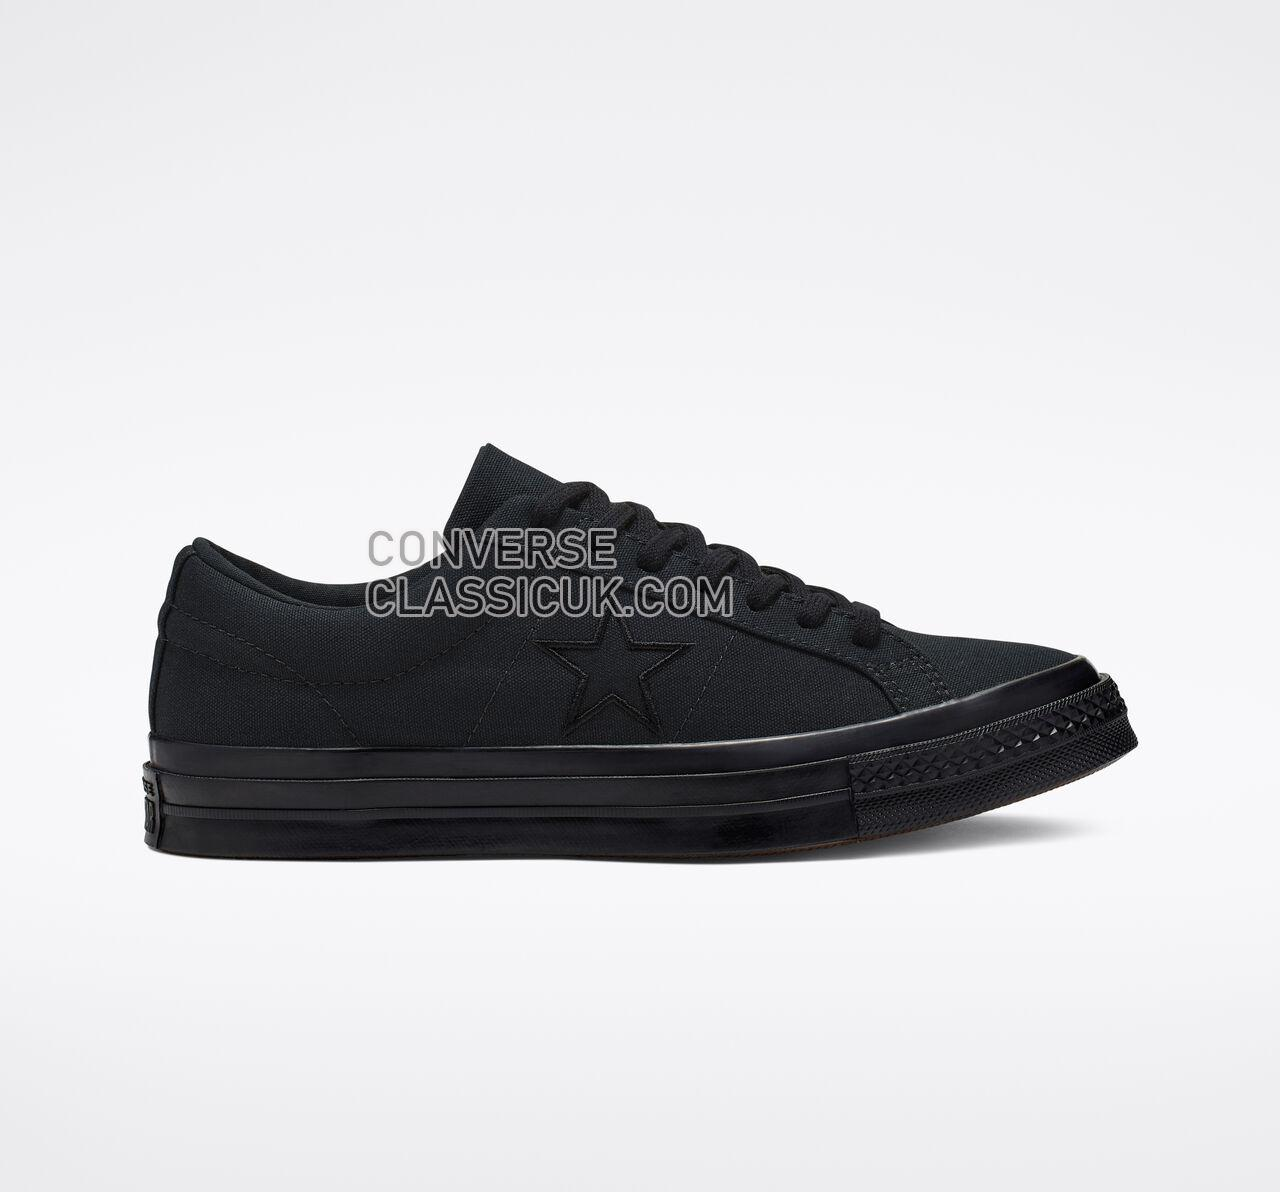 Converse One Star Seasonal Color Mens Womens Unisex 163380C Black/Black/Black Shoes